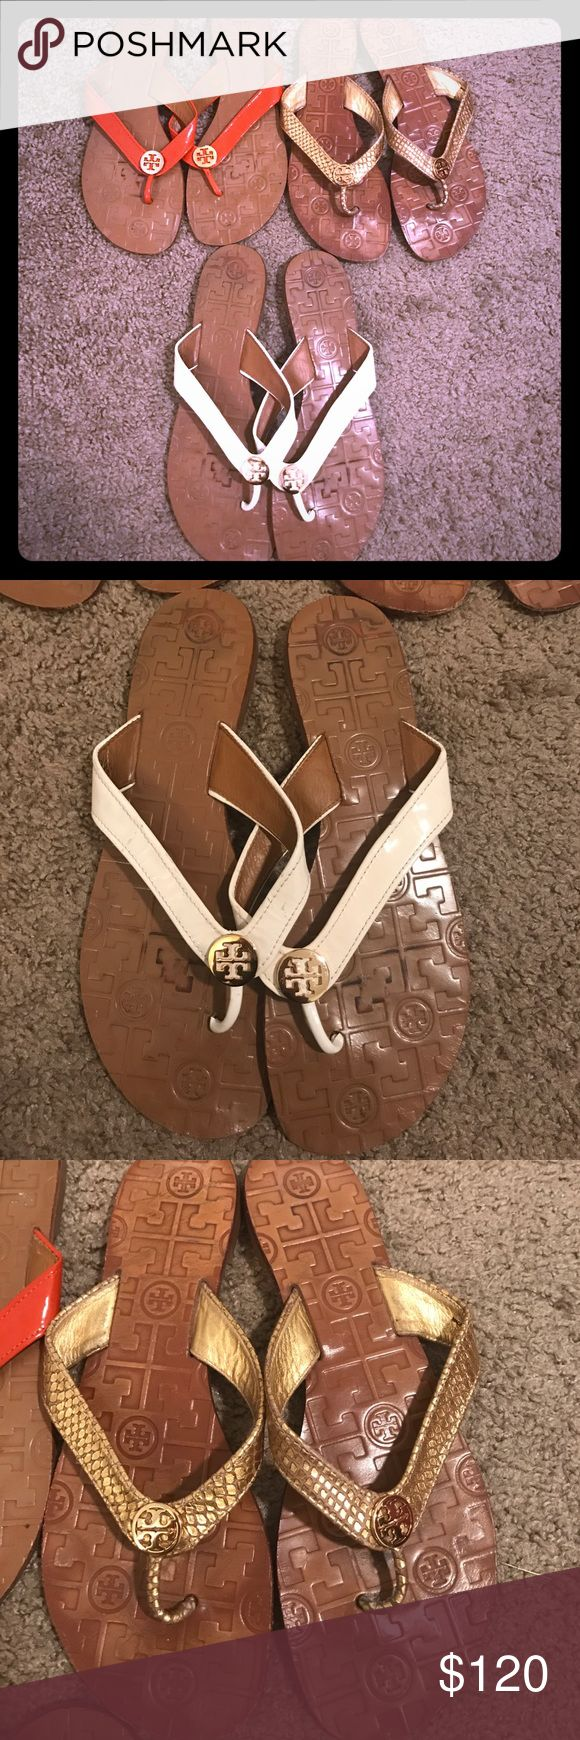 Tory Burch Flip Flop Bundle 3 pairs of Tory Burch Flip Flops •cream and gold • gold on gold • orange and gold • leather upper • super comfortable • Tory Burch Shoes Sandals